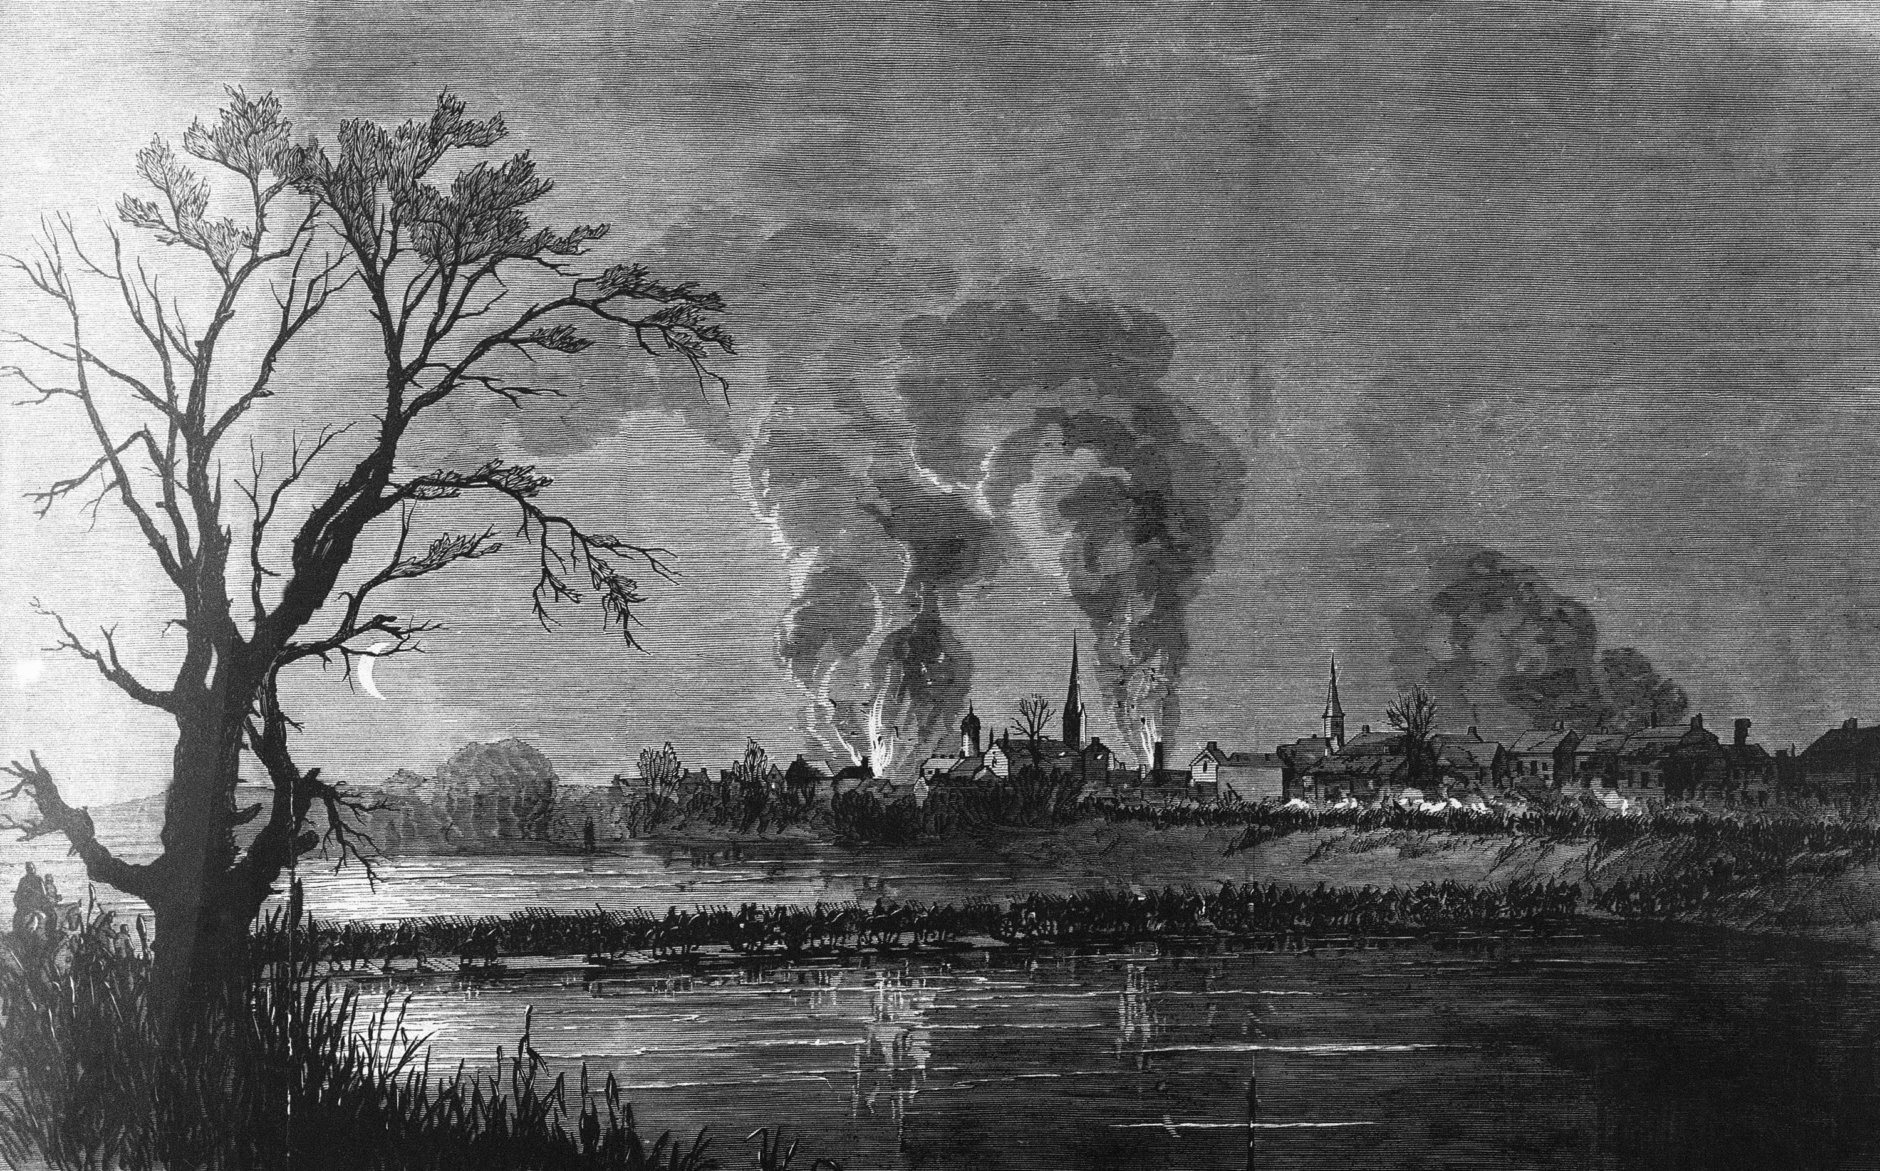 Union army, under General Ambrose Everett Burnside, crosses the Rappahannock River on pontoon bridges during the attack on Fredericksburg, Virginia depicted in this undated rendering by combat artist Frank Schell. (AP Photo)